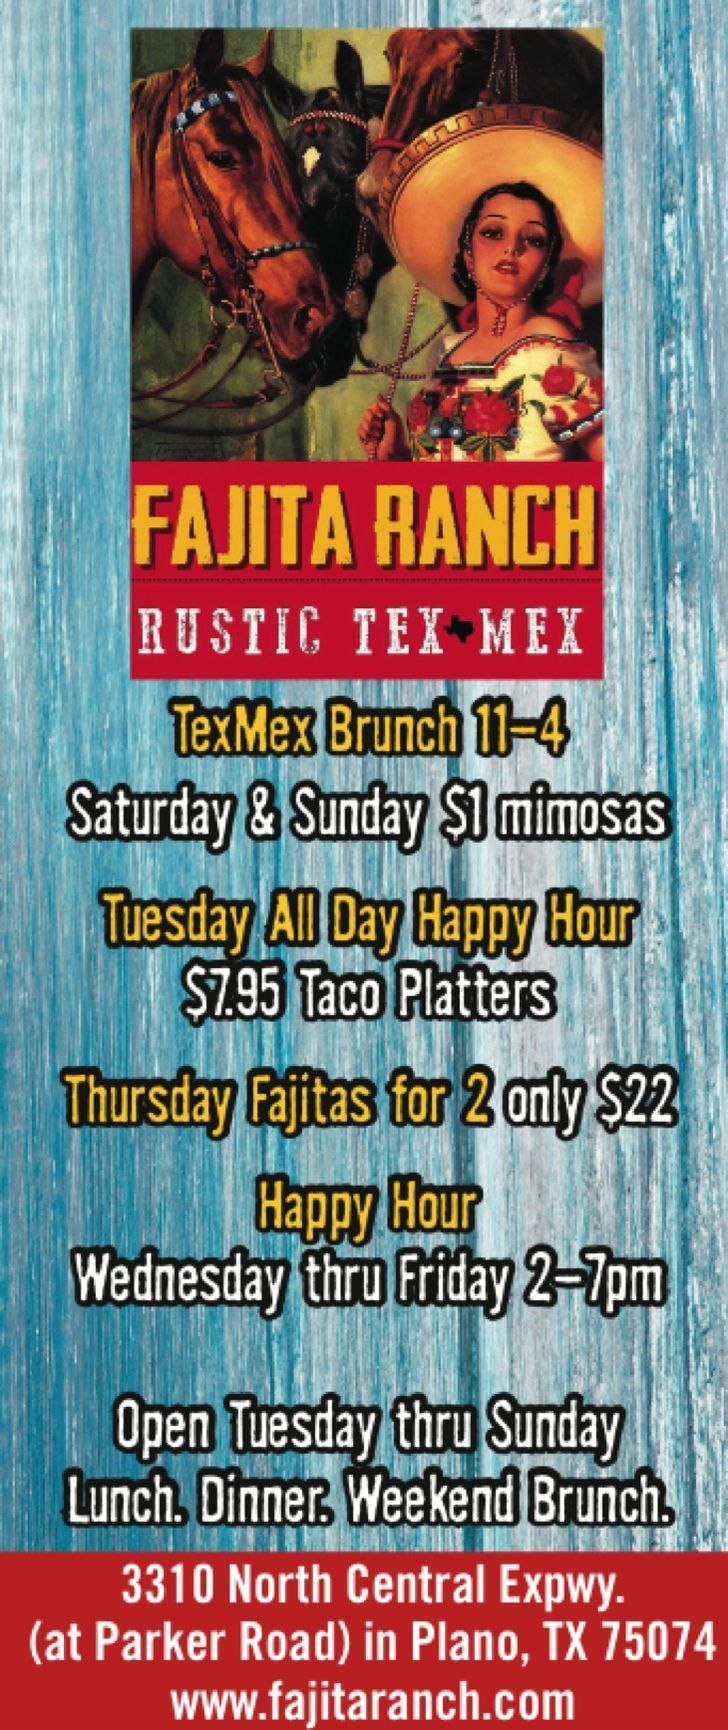 Cuellar's Fajita Ranch